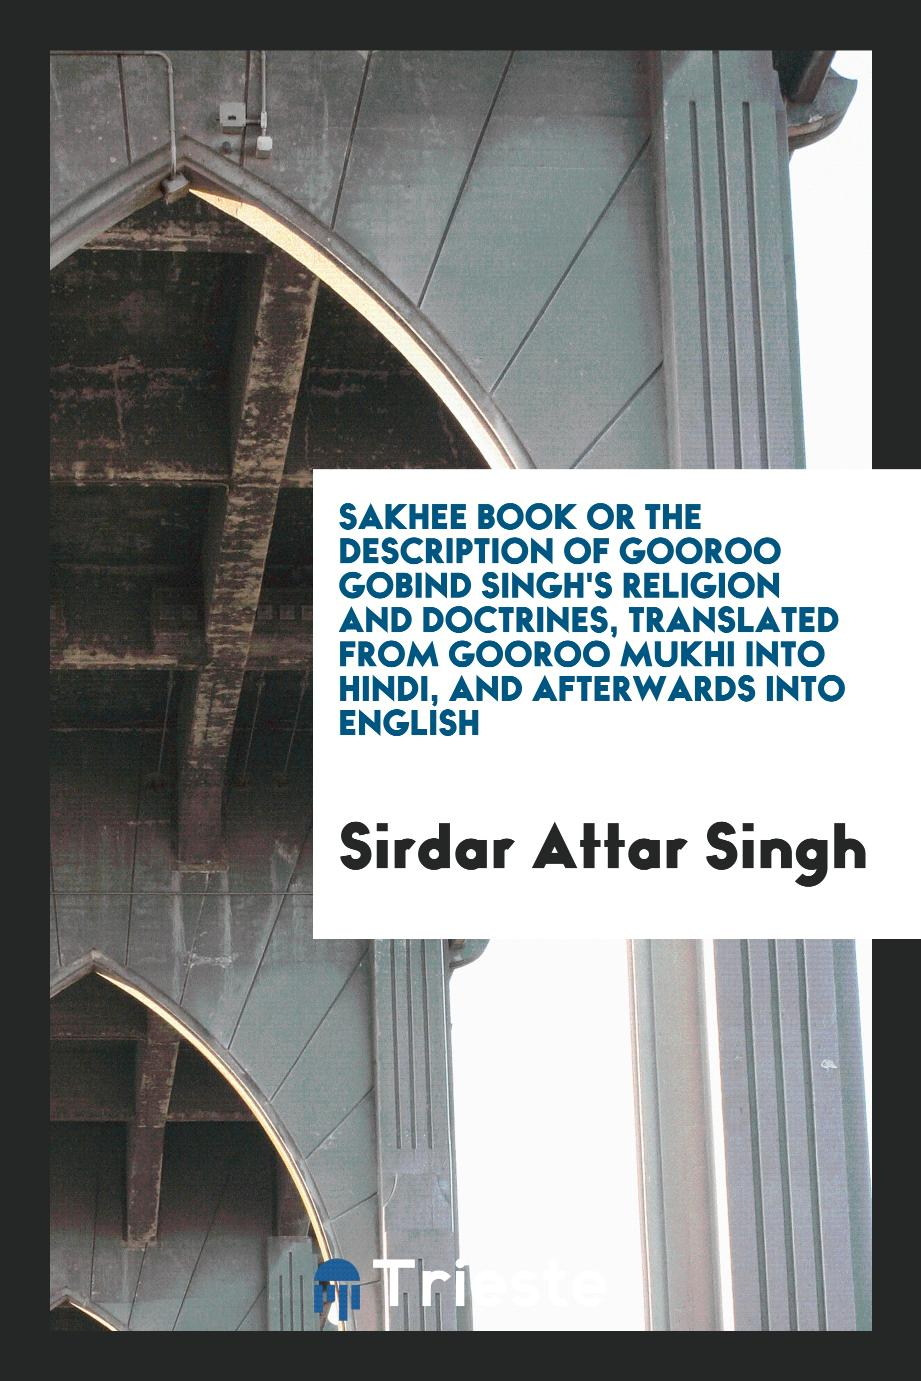 Sakhee Book or the Description of Gooroo Gobind Singh's Religion and Doctrines, Translated from Gooroo Mukhi into Hindi, and Afterwards into English